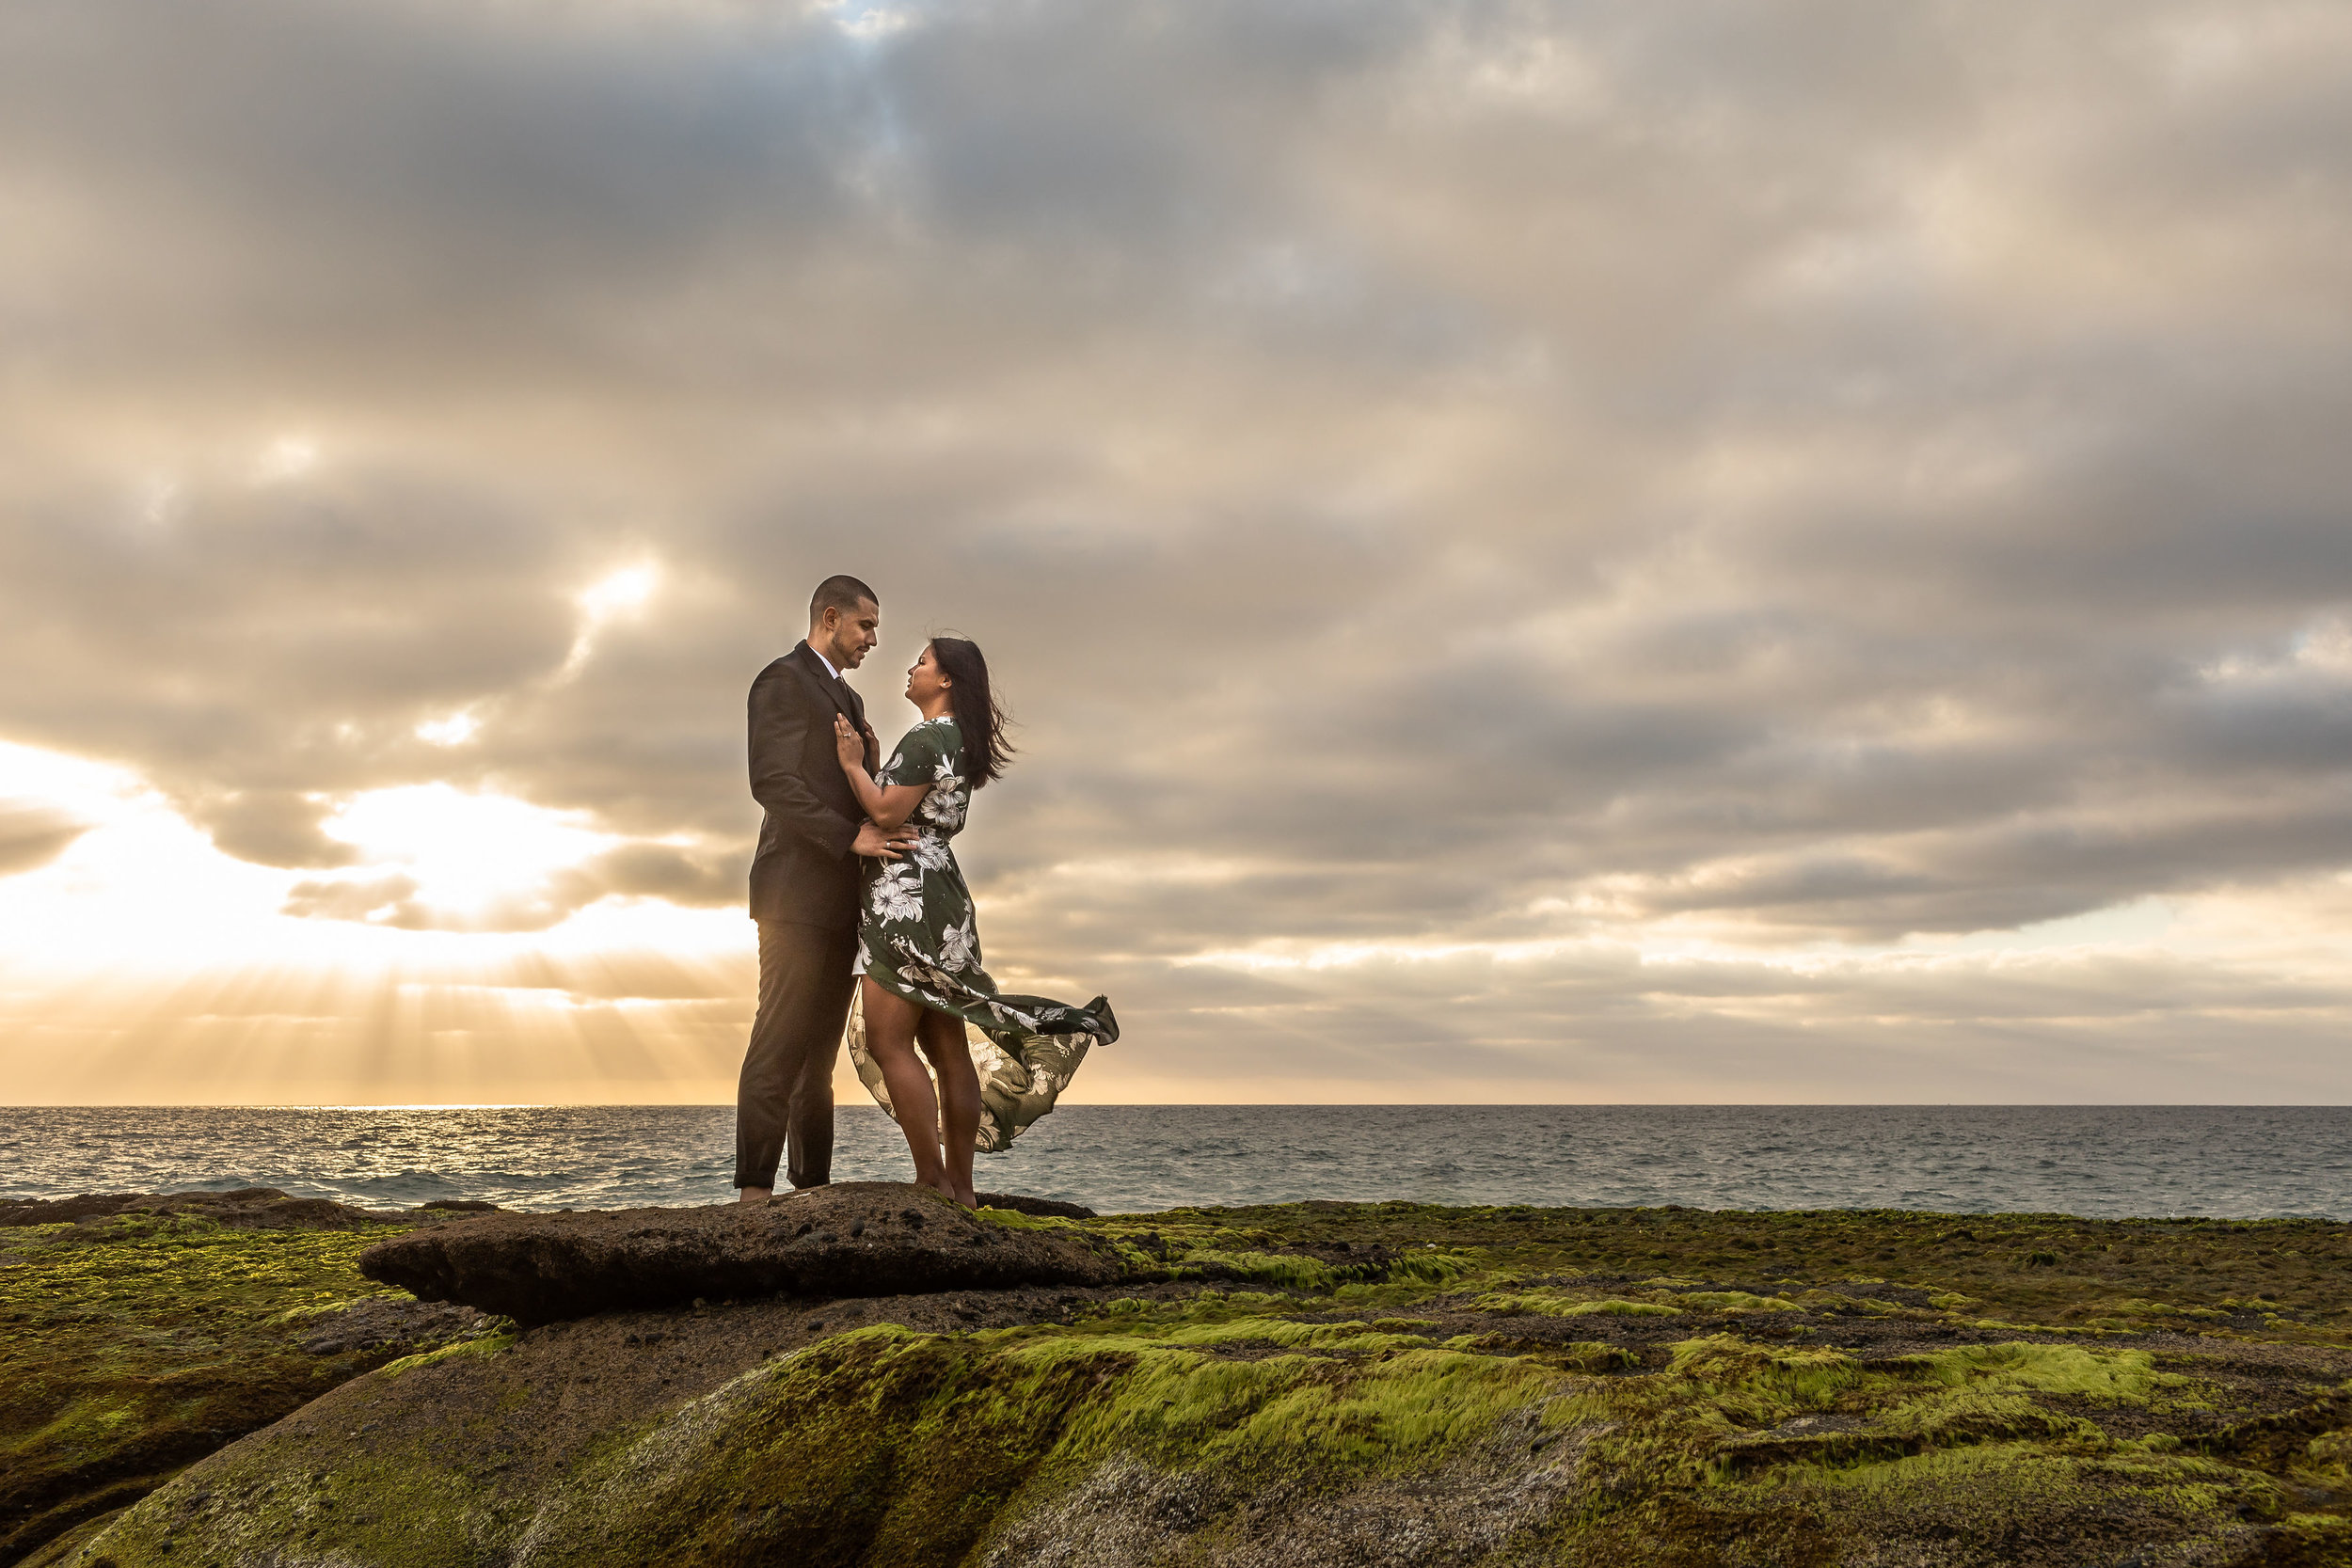 ! Dramatic Artistic Engagement Photo on a Rocky Beach.jpg